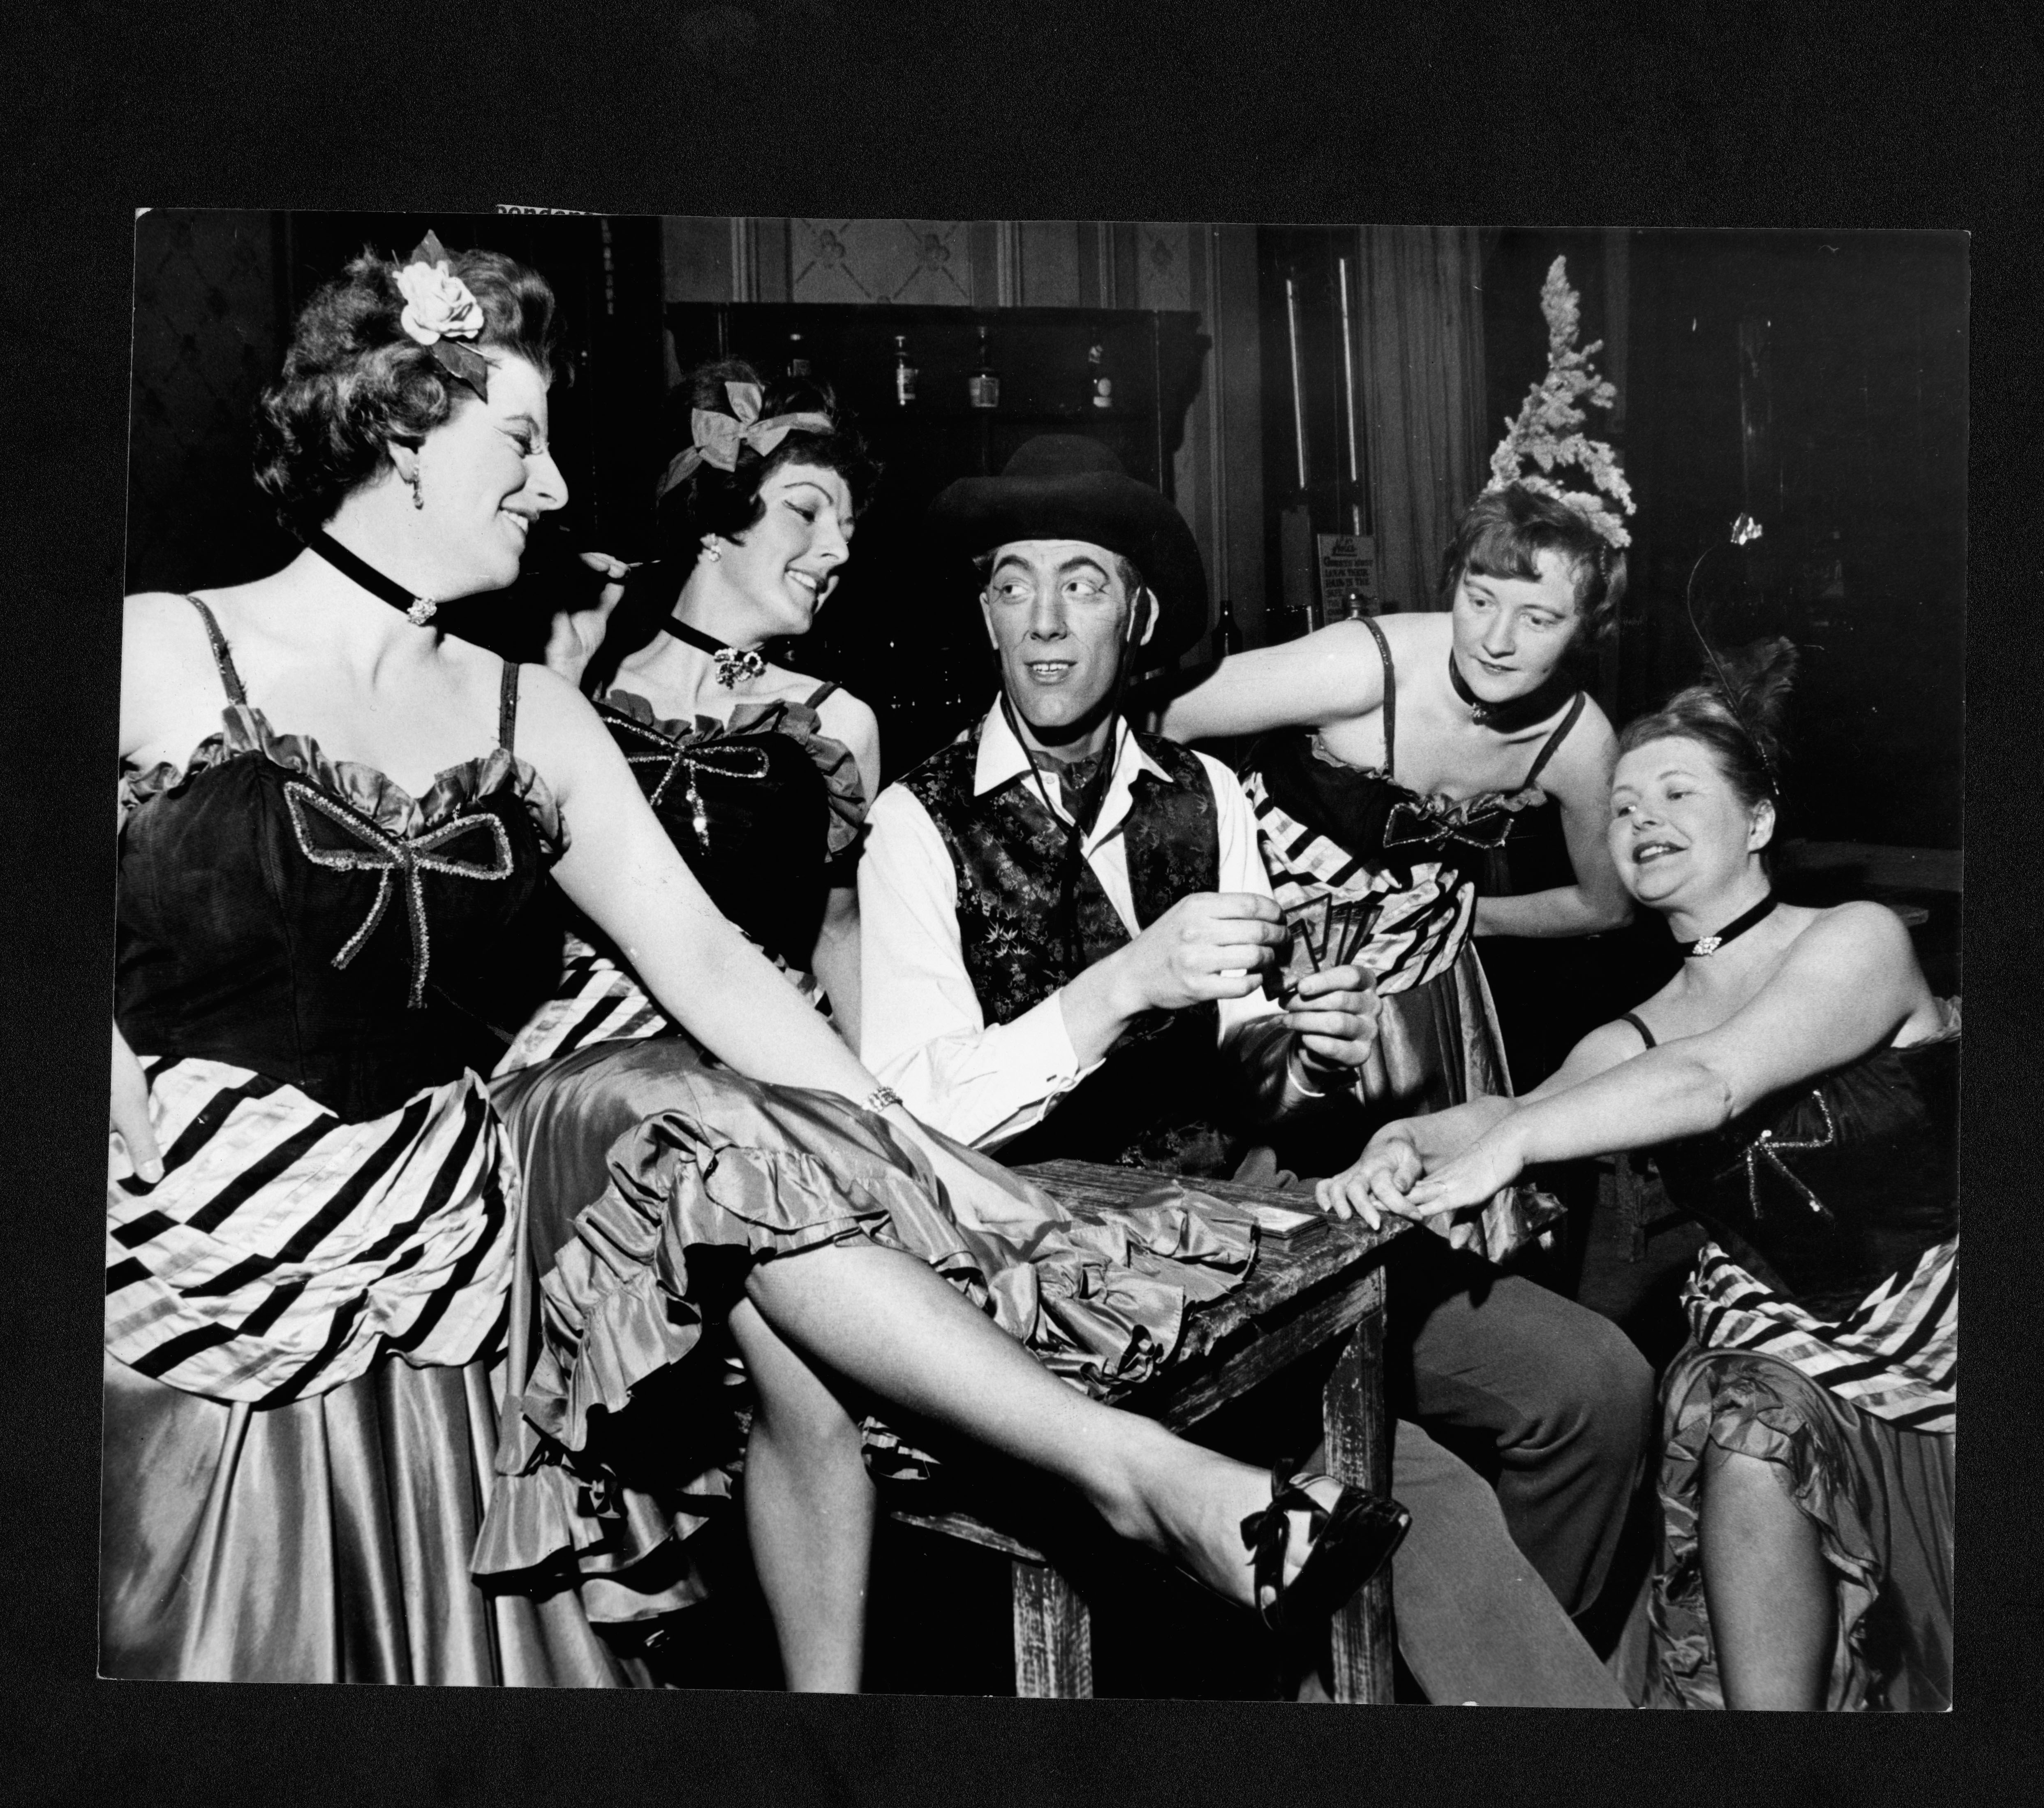 The cast of Calamity Jane, May 1964